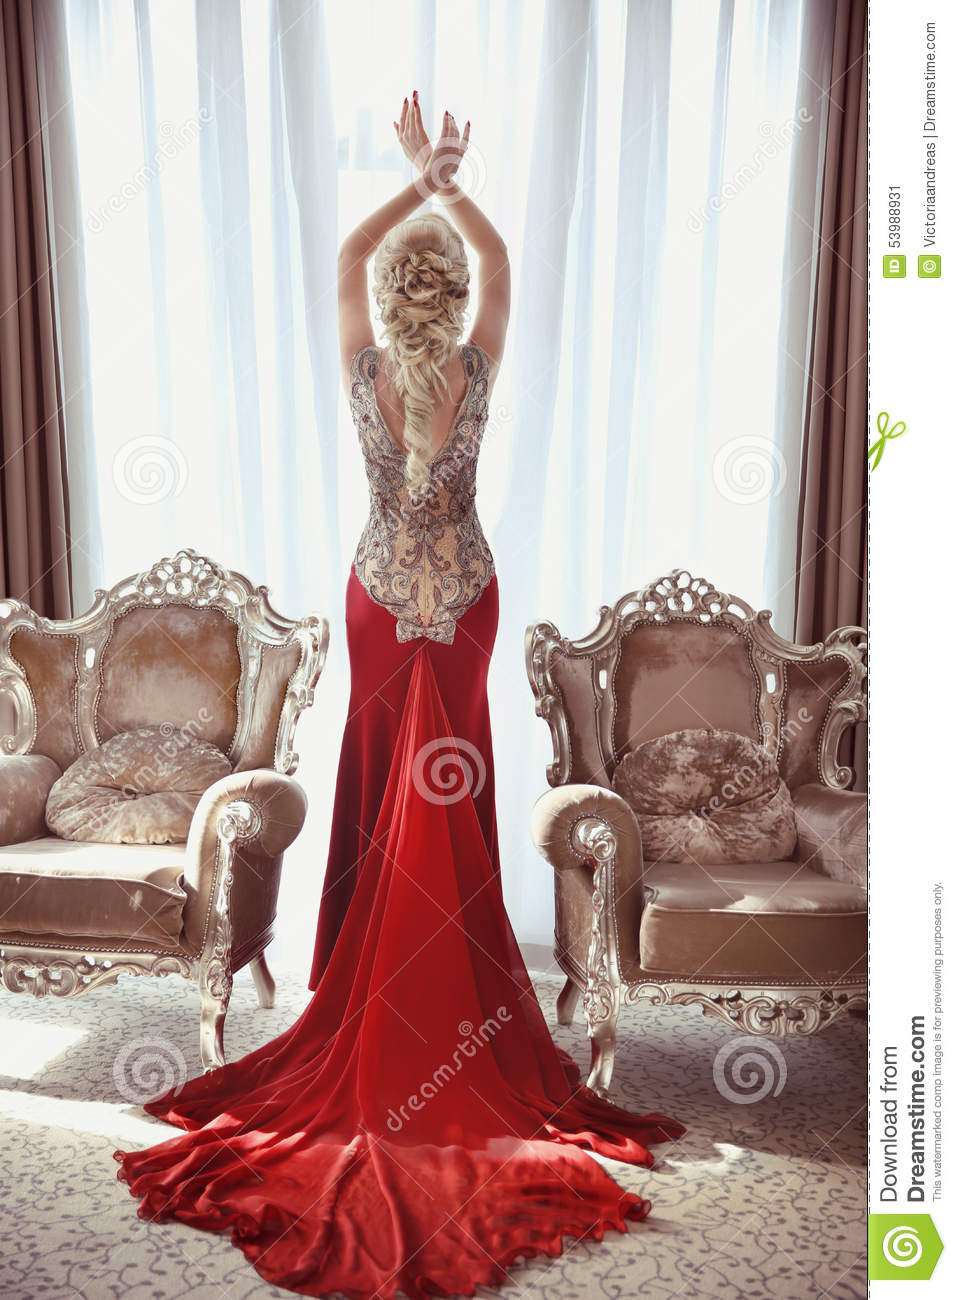 Indoor full length portrait of elegant blond woman in red gown with long  train of dress posing between two modern armchairs in front of window at  interior. 1b70cc525